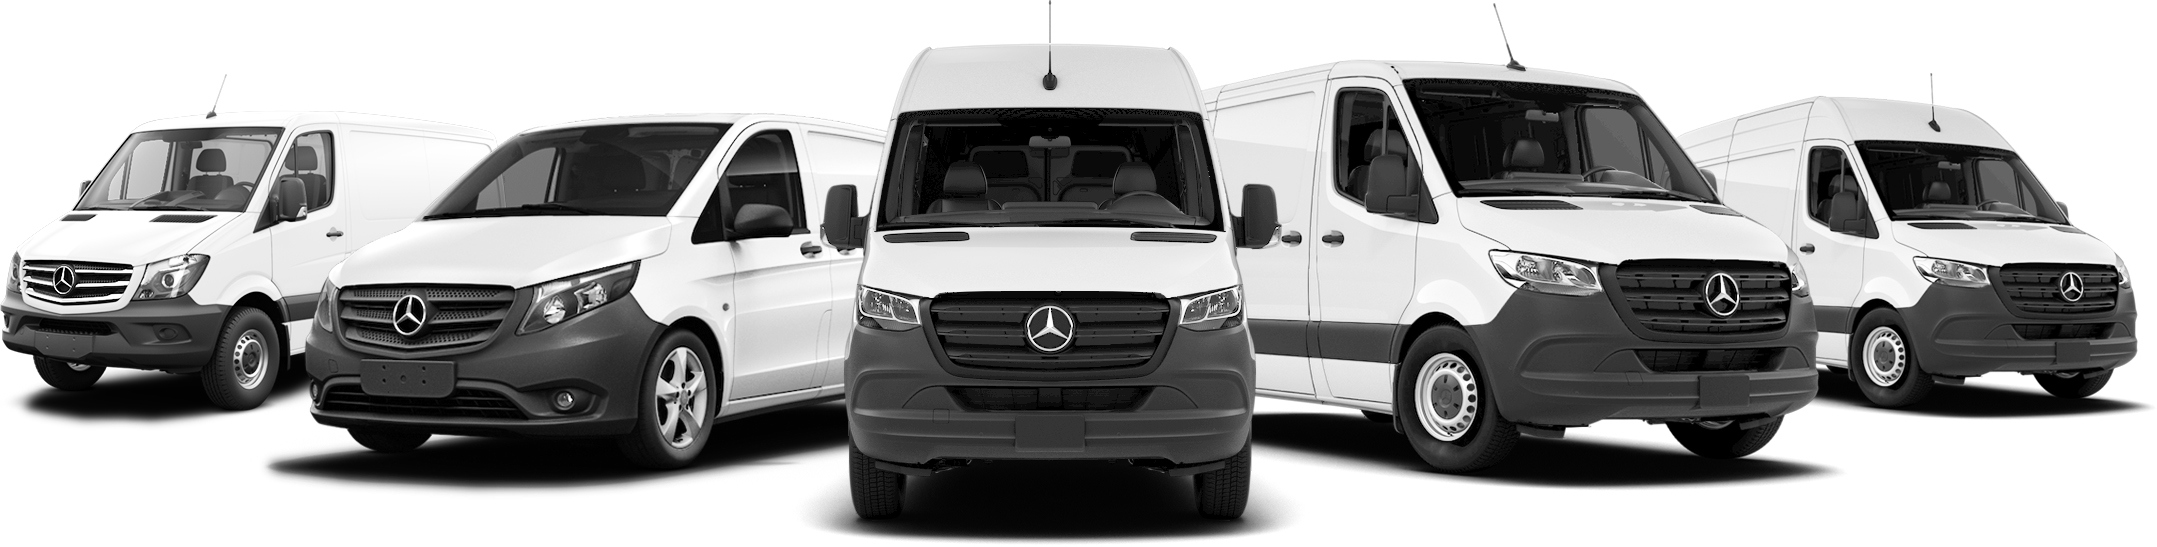 Mercedes-Benz Metris and Sprinter Vans Calgary